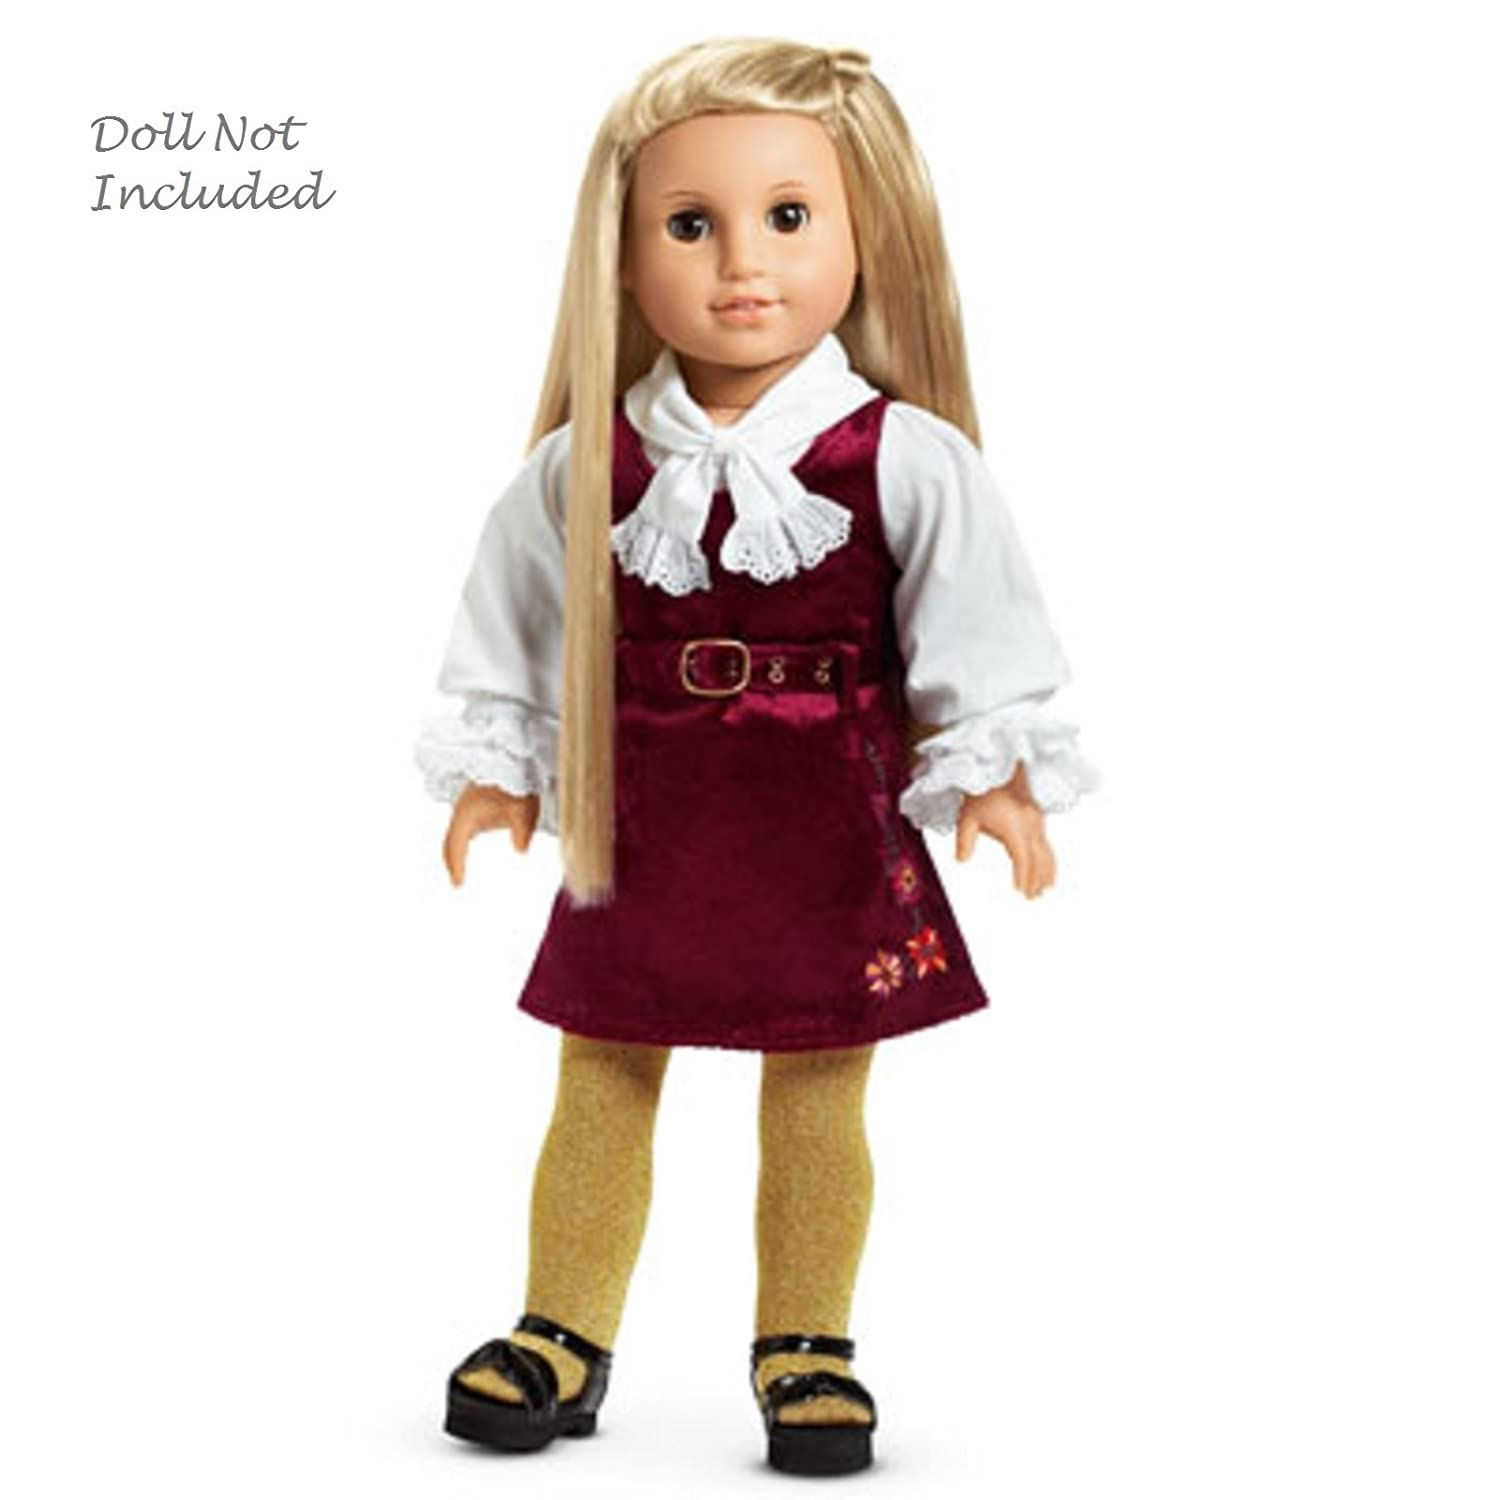 American Girl Julie's Christmas Outfit for 18